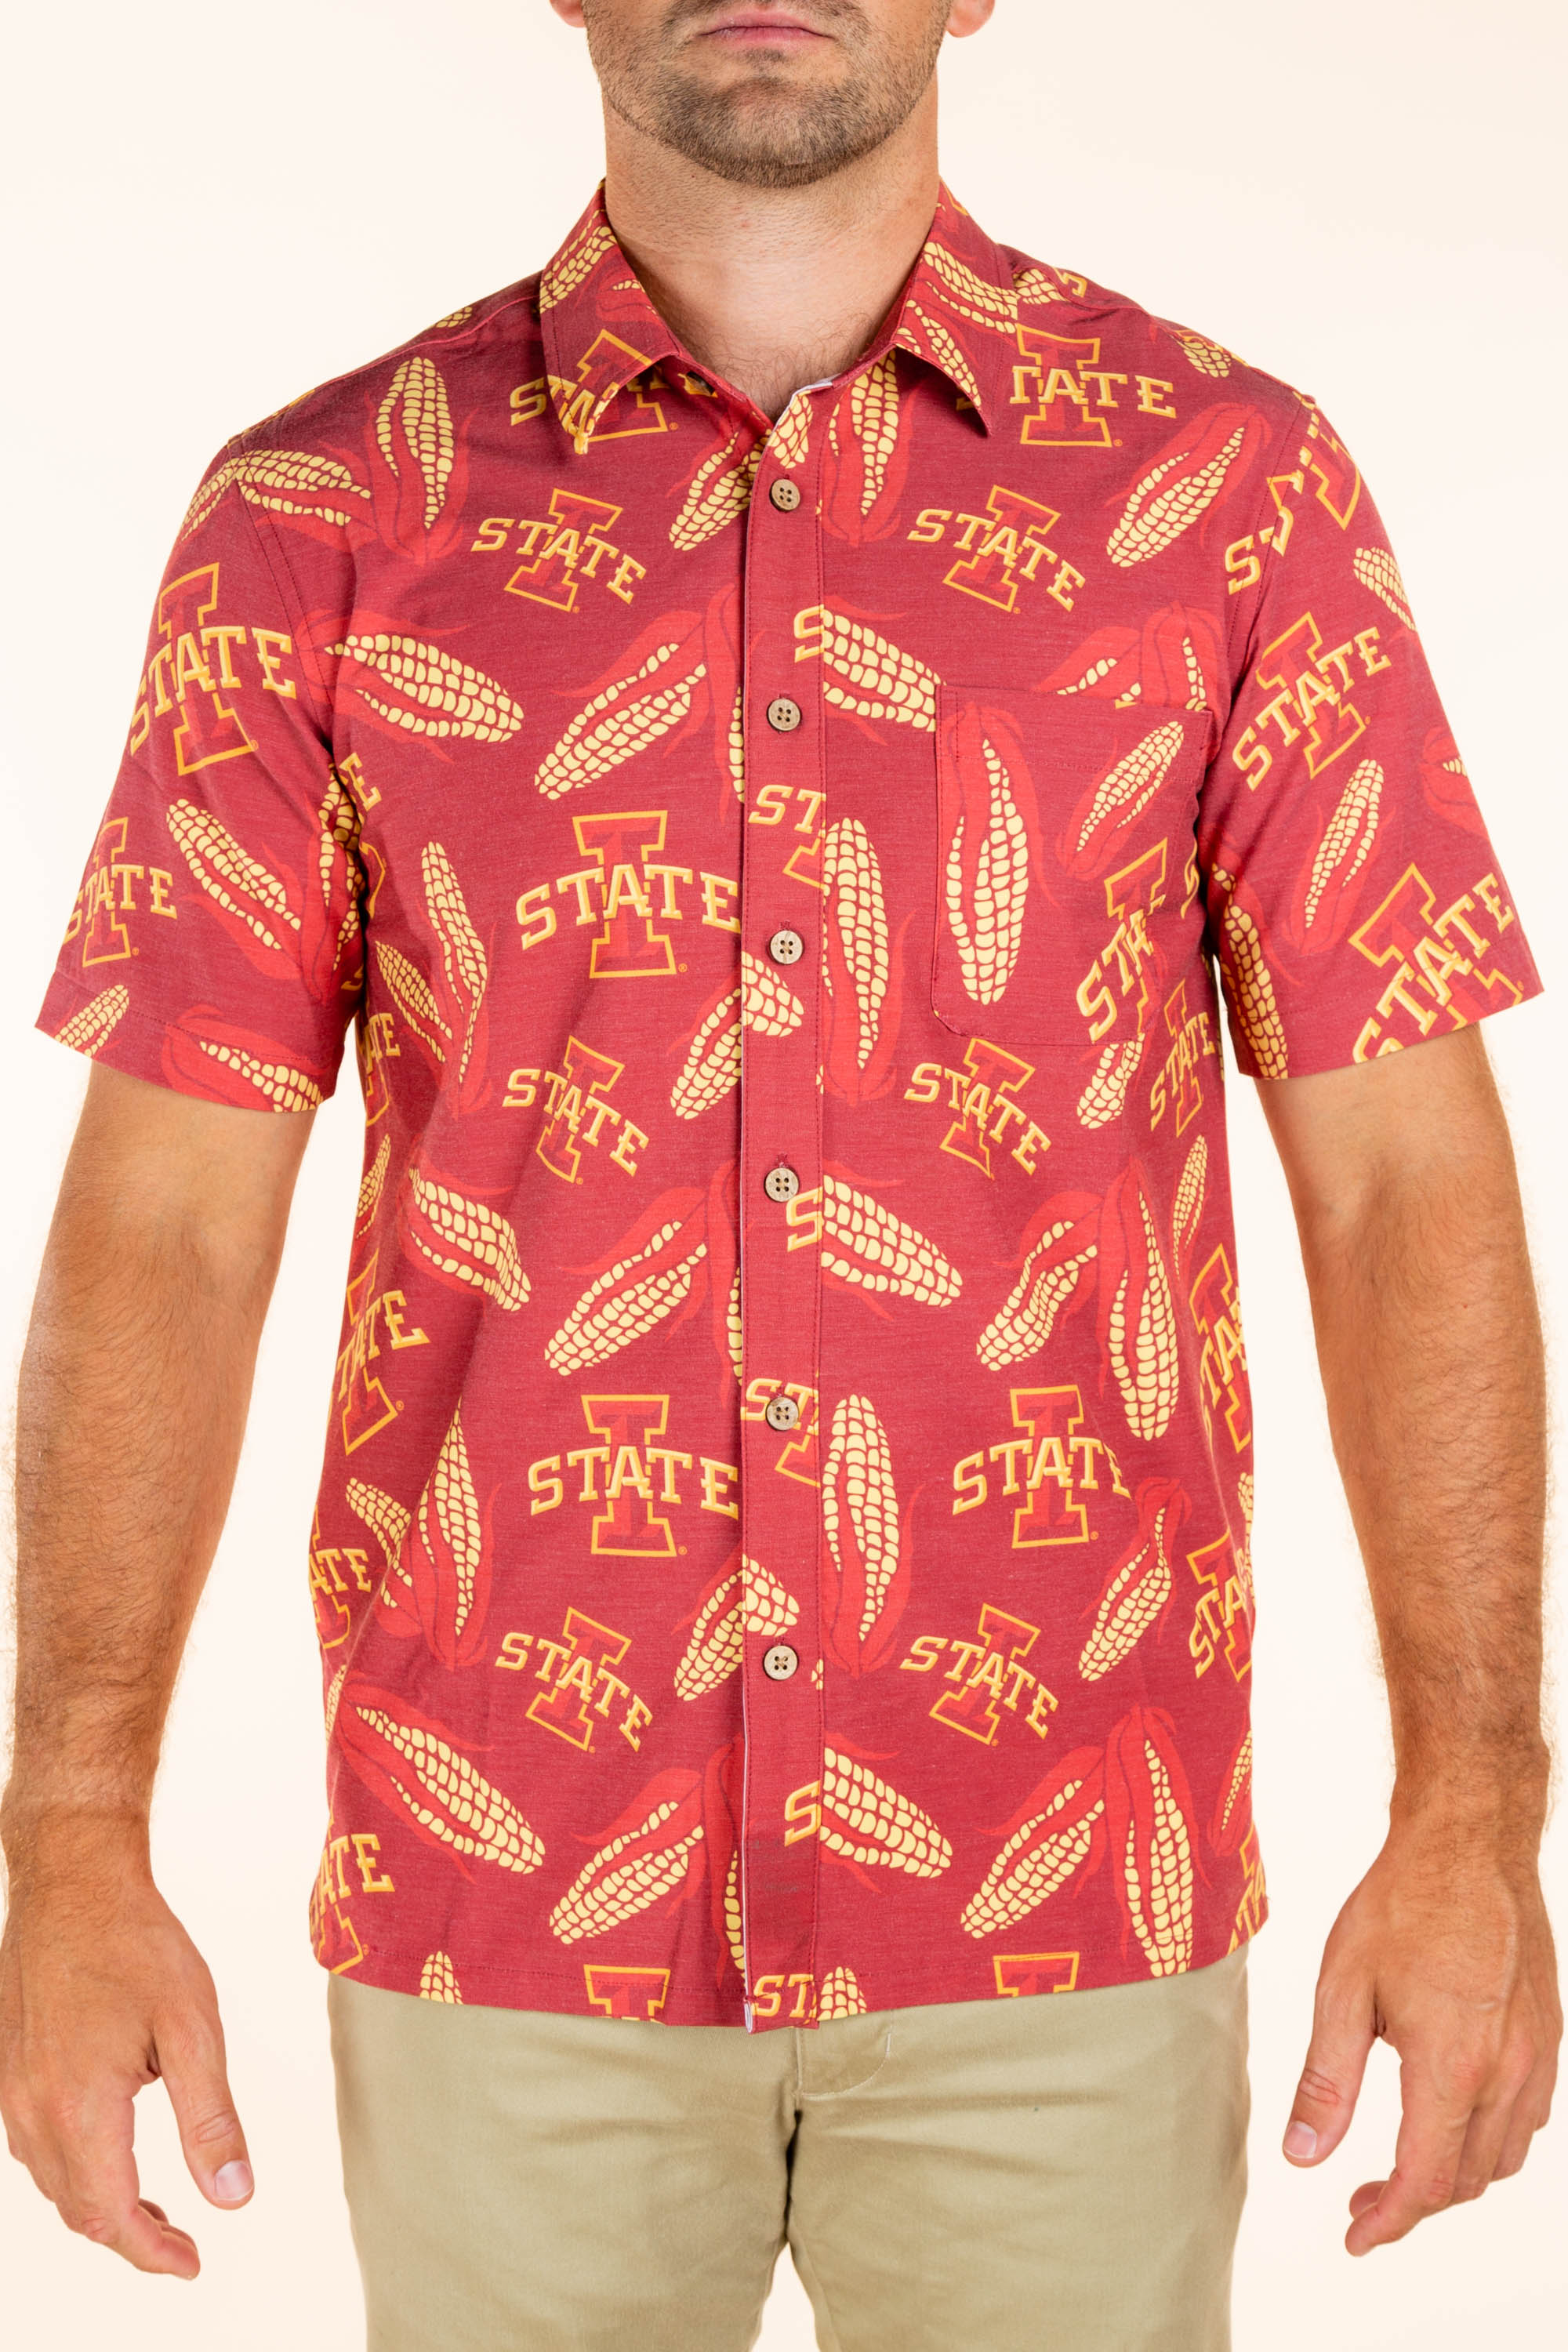 Iowa State Corn Tailgating Shirt